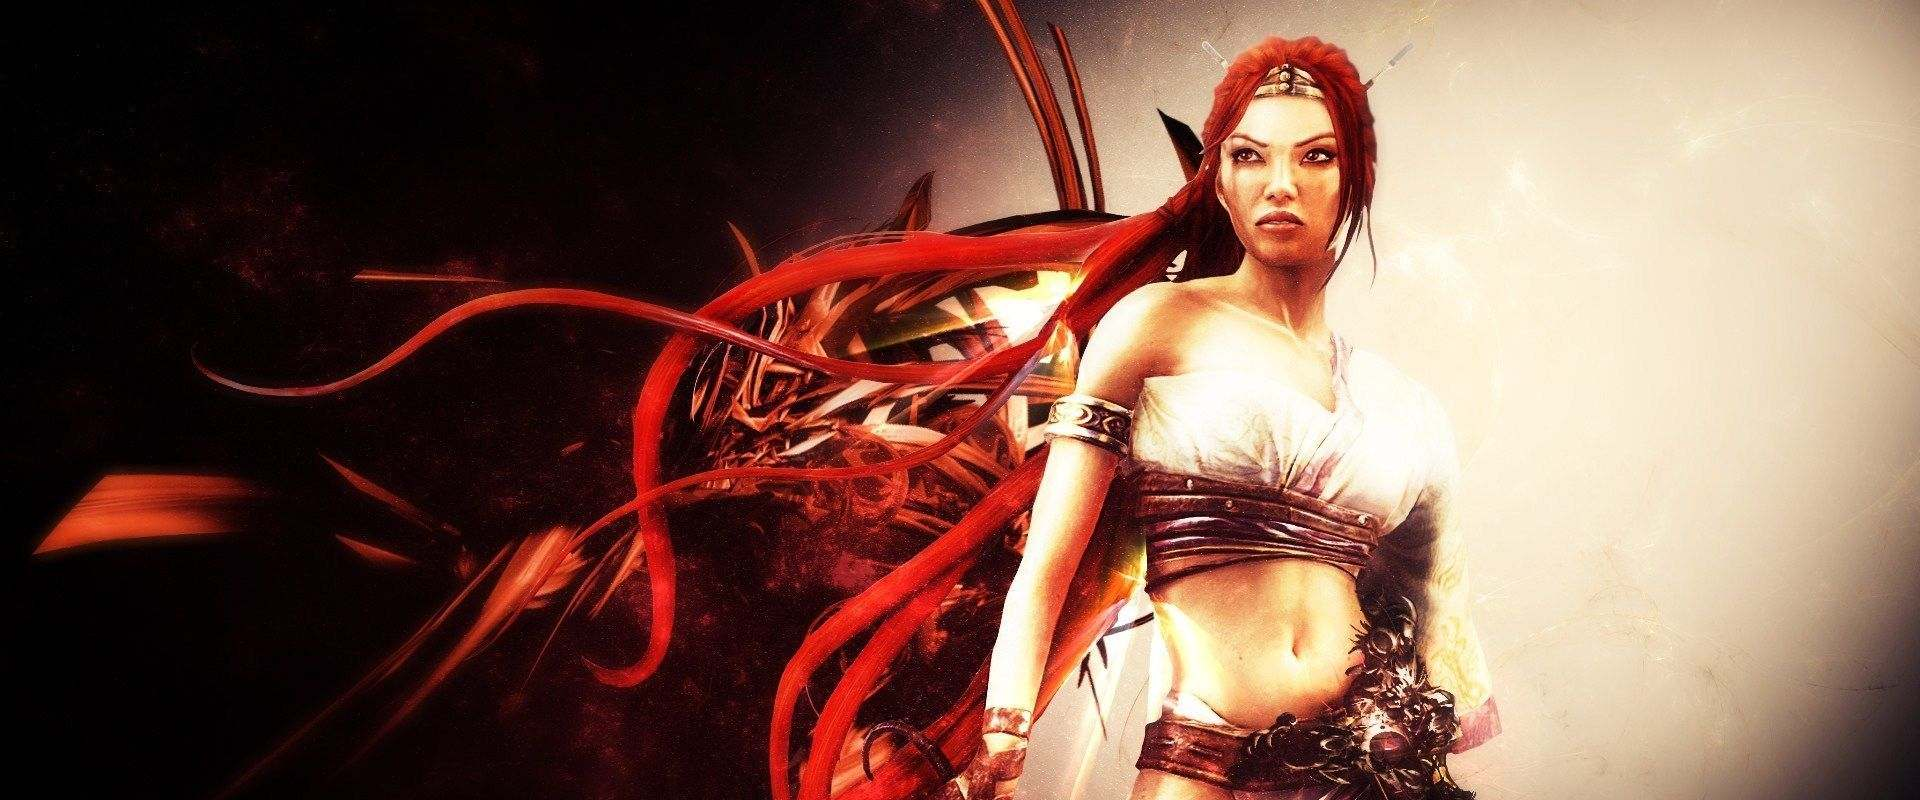 Heavenly Sword background 2